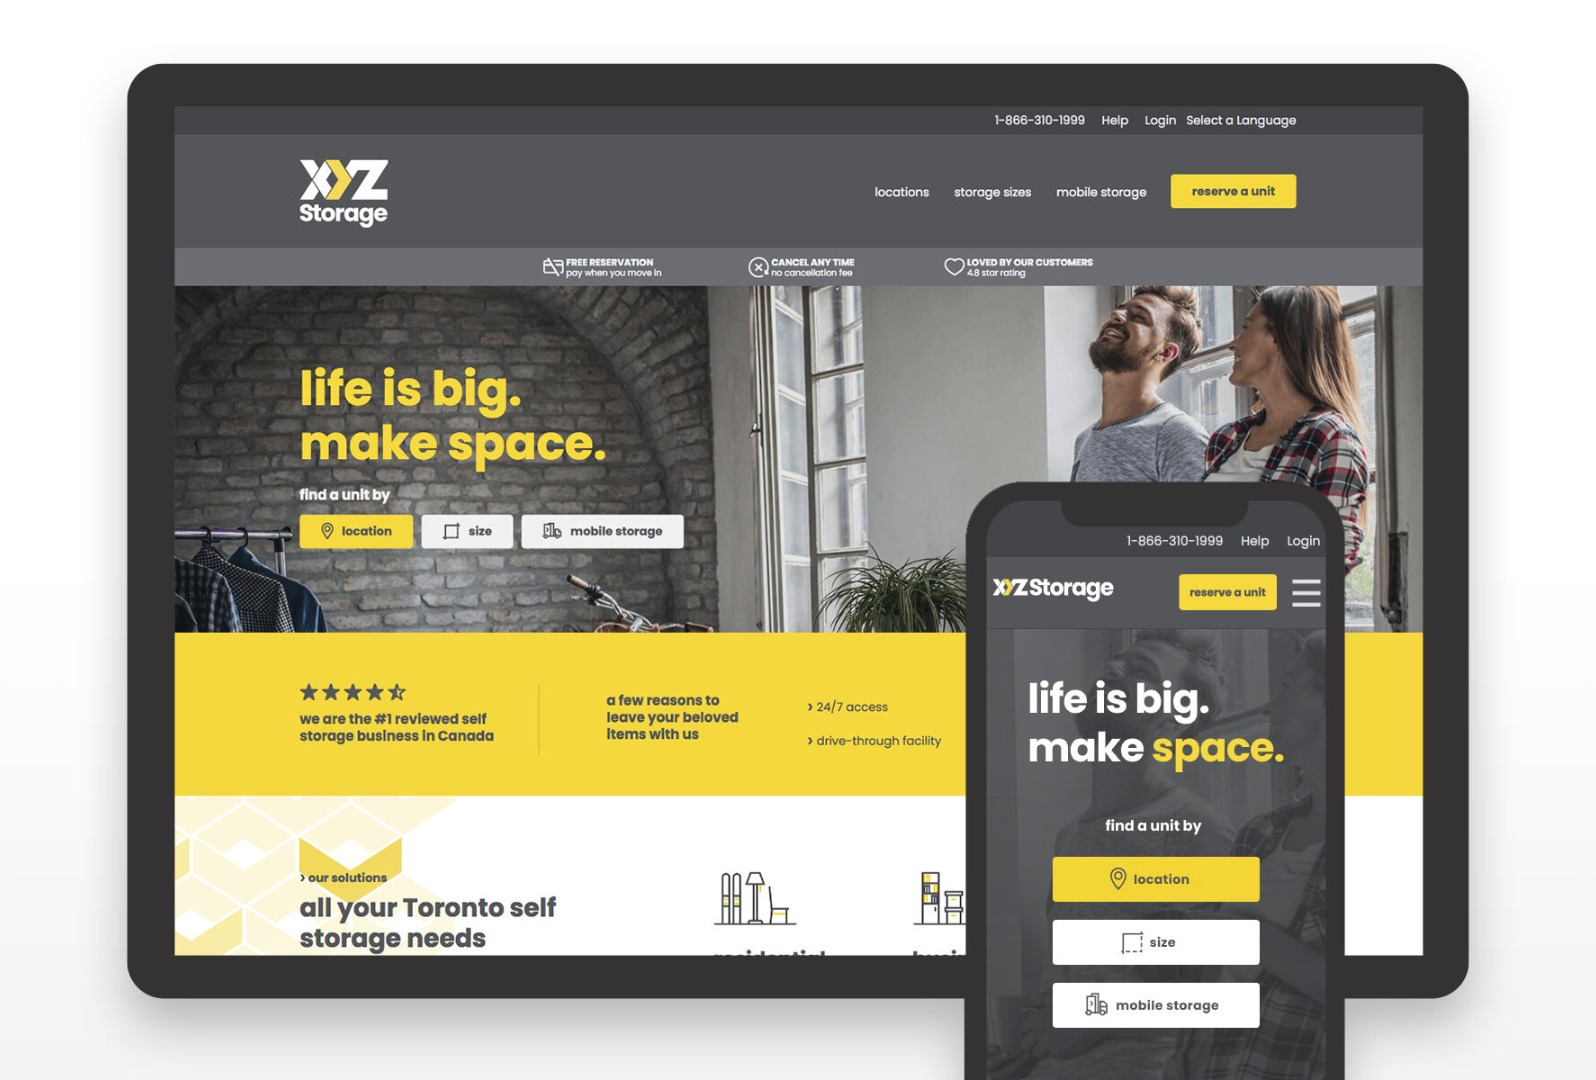 XYZ Storage Website